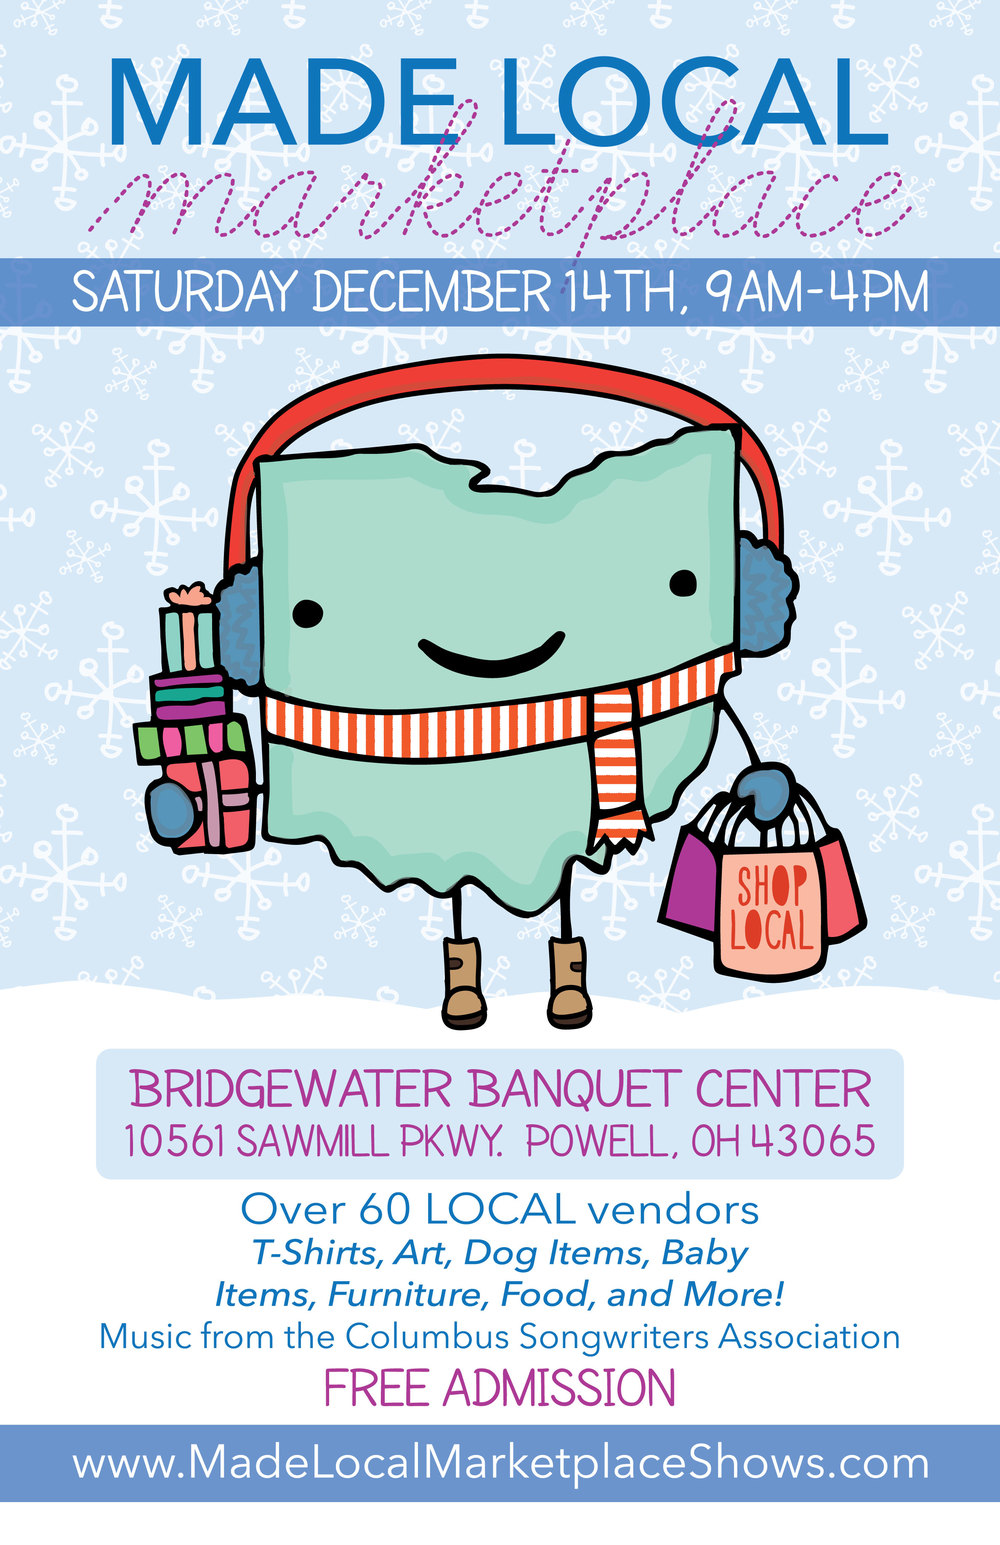 Poster Design for the Made Local Marketplace Holiday Show